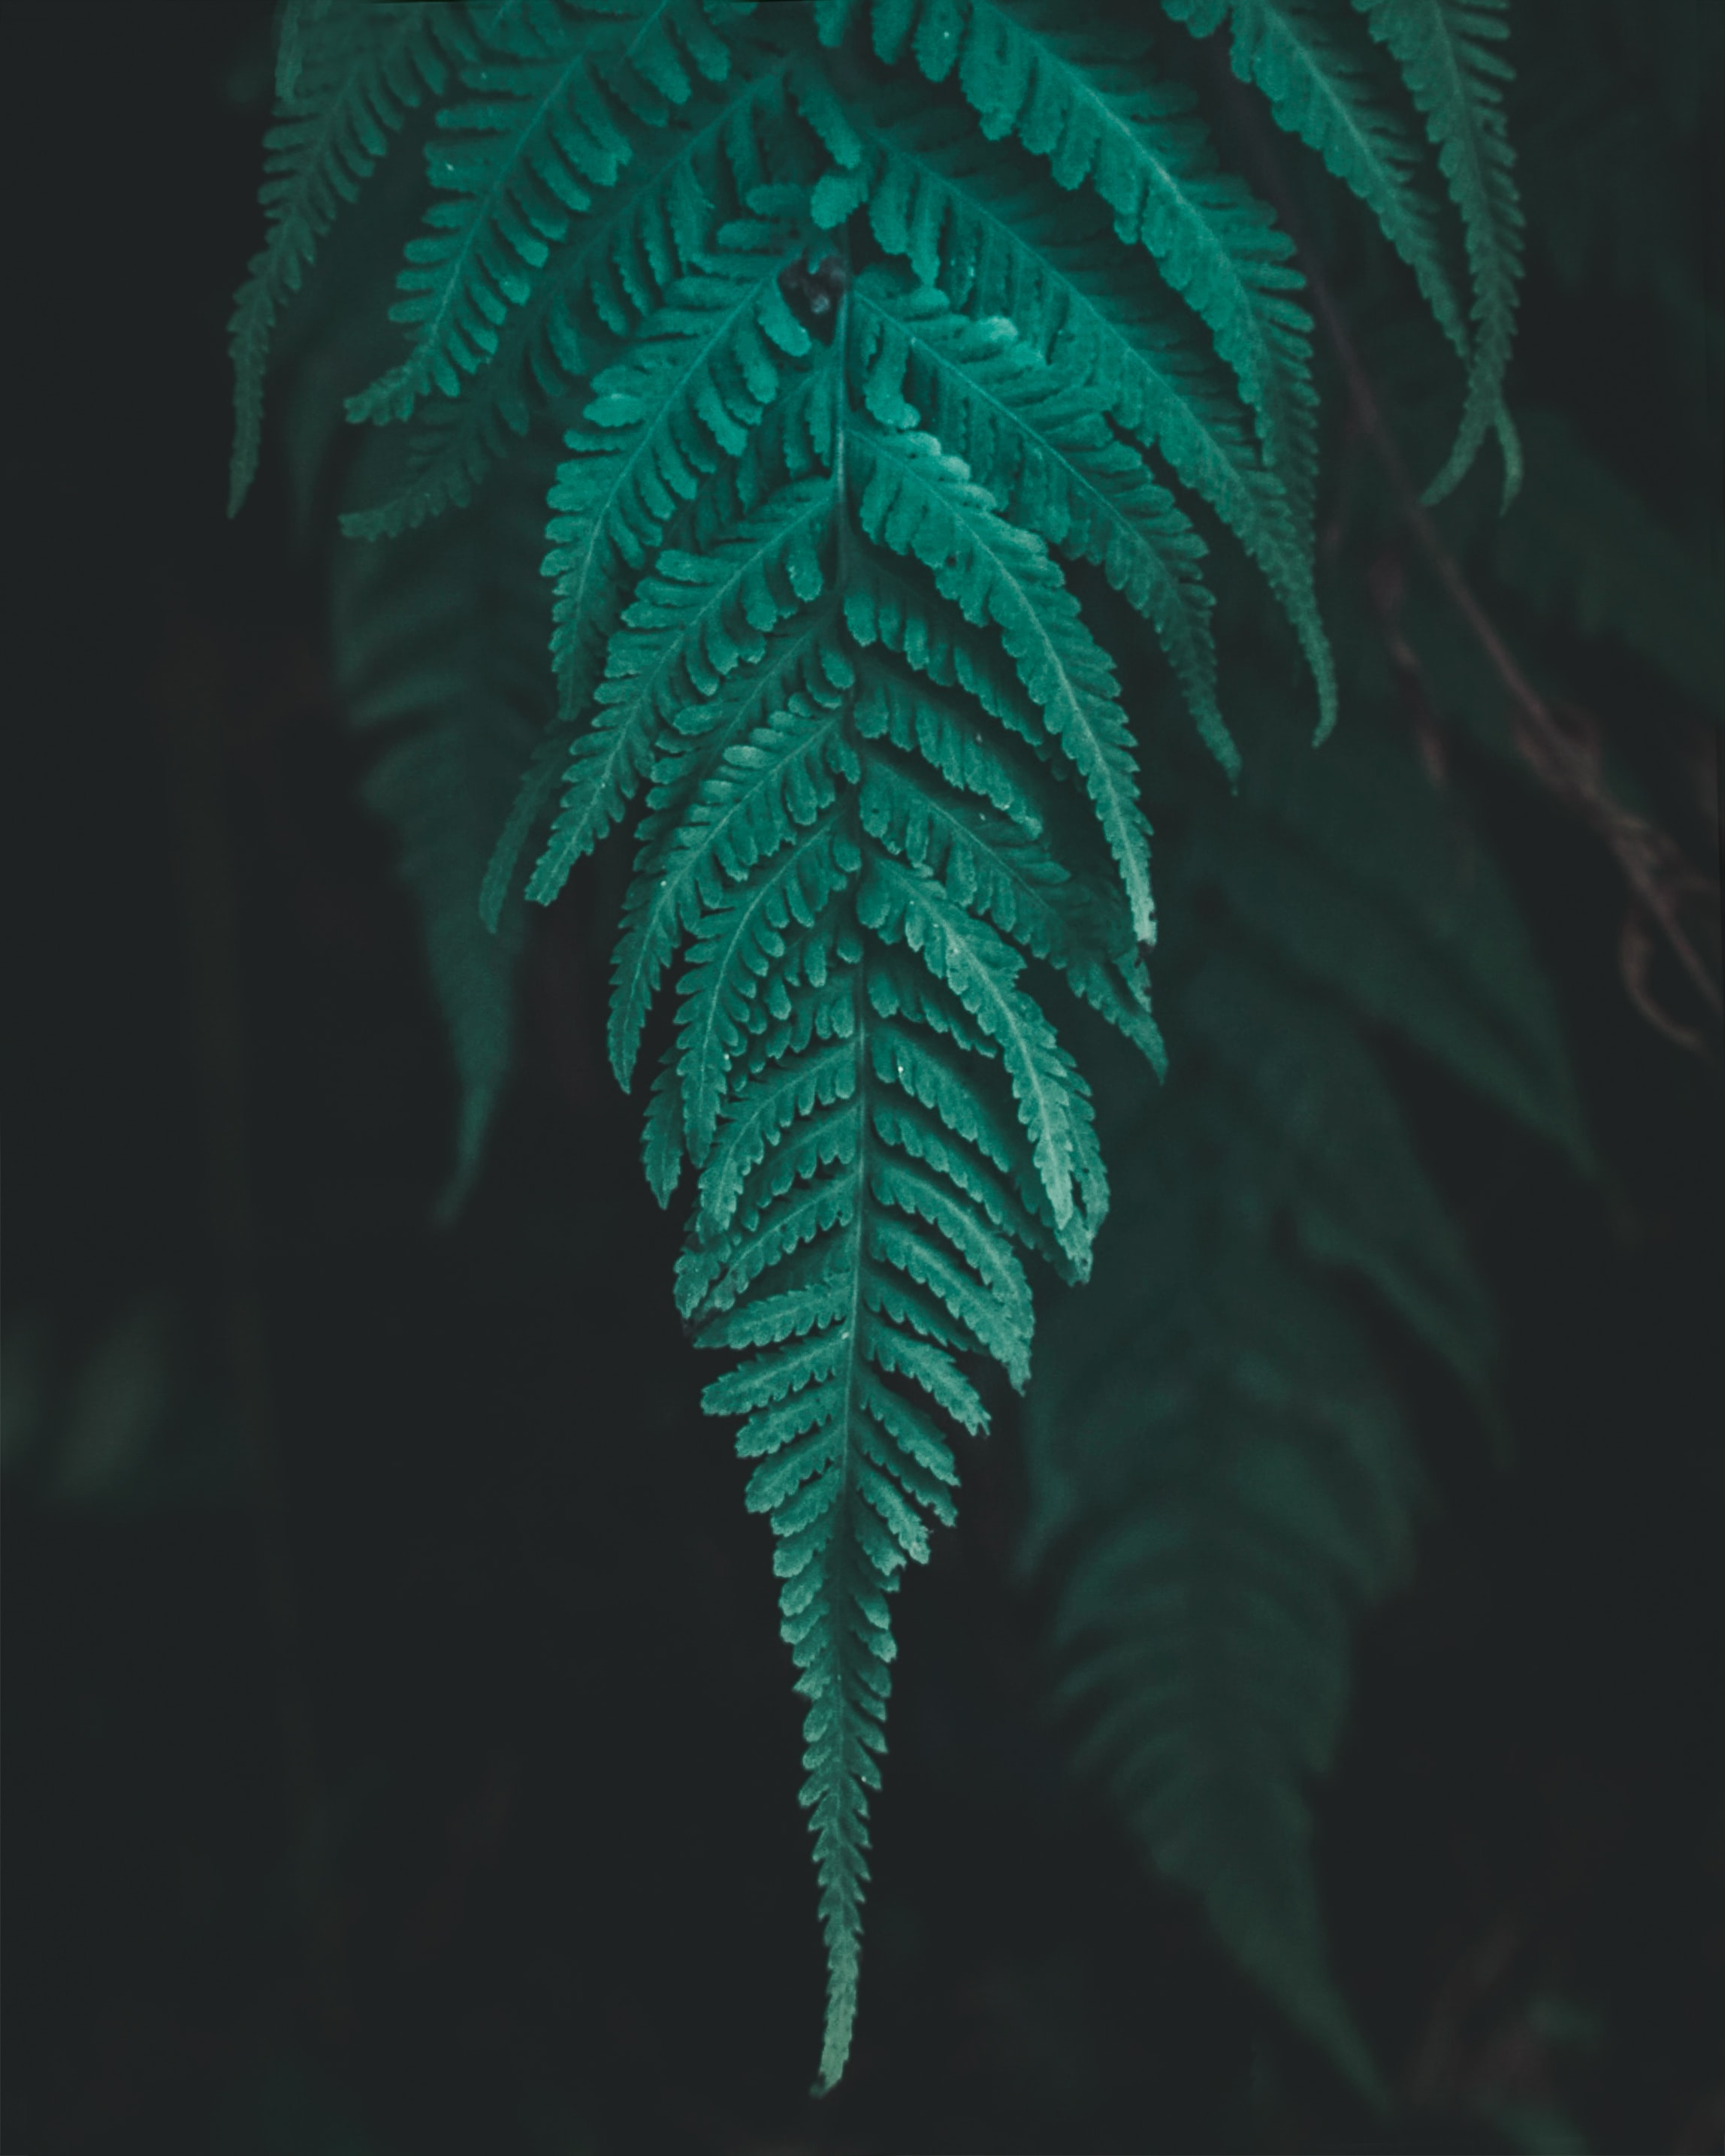 56476 download wallpaper Plant, Macro, Fern, Leaflet screensavers and pictures for free